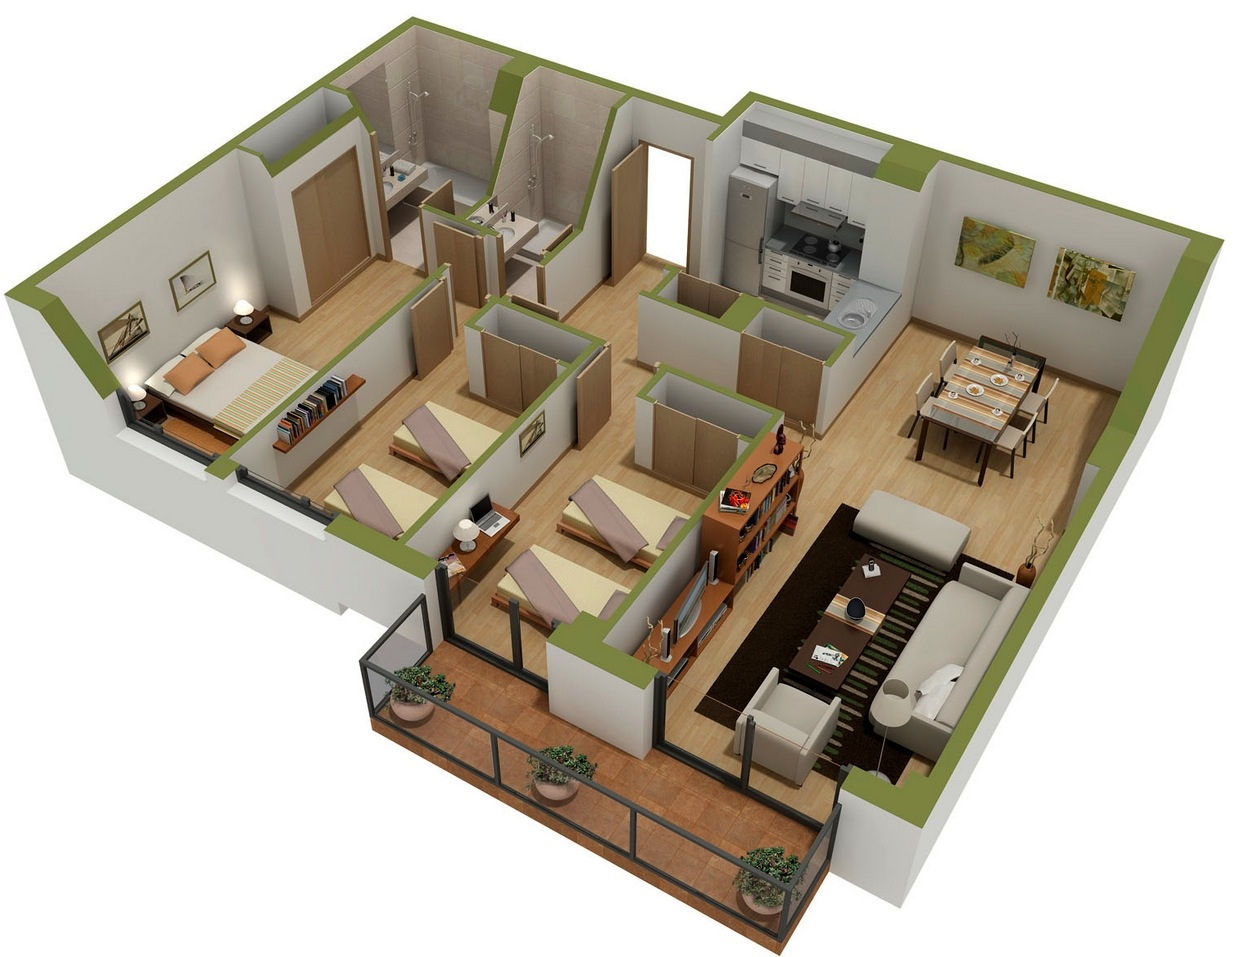 25 three bedroom house apartment floor plans Building layout plan free